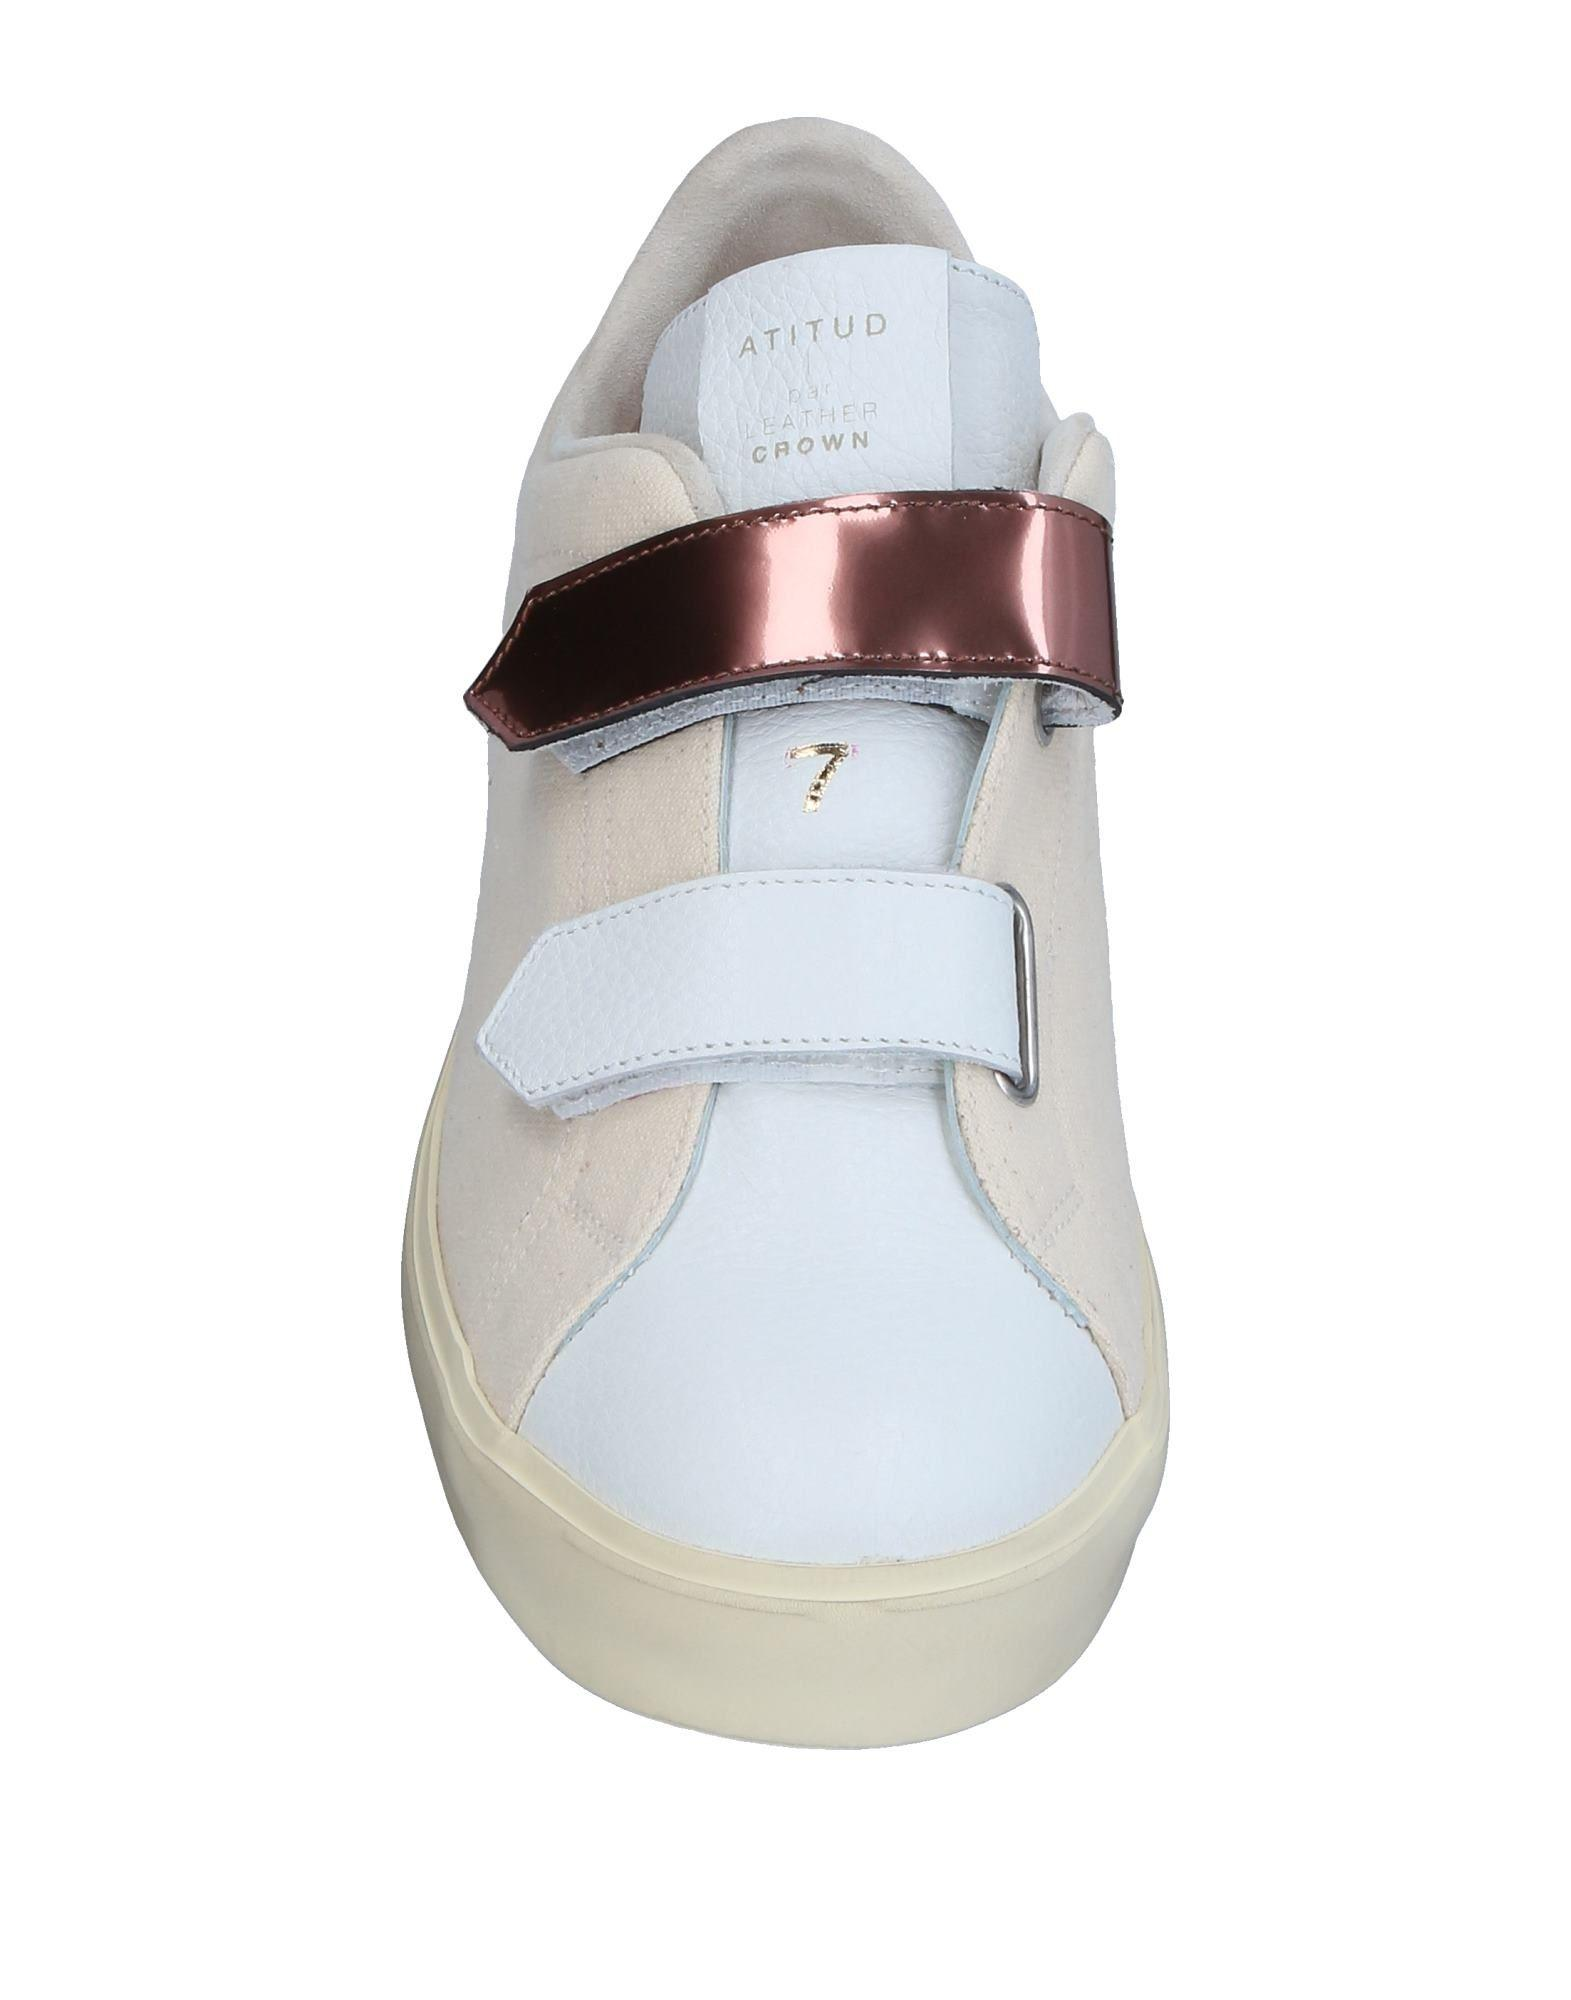 Leather Crown Canvas Low-tops & Sneakers in Ivory (White)